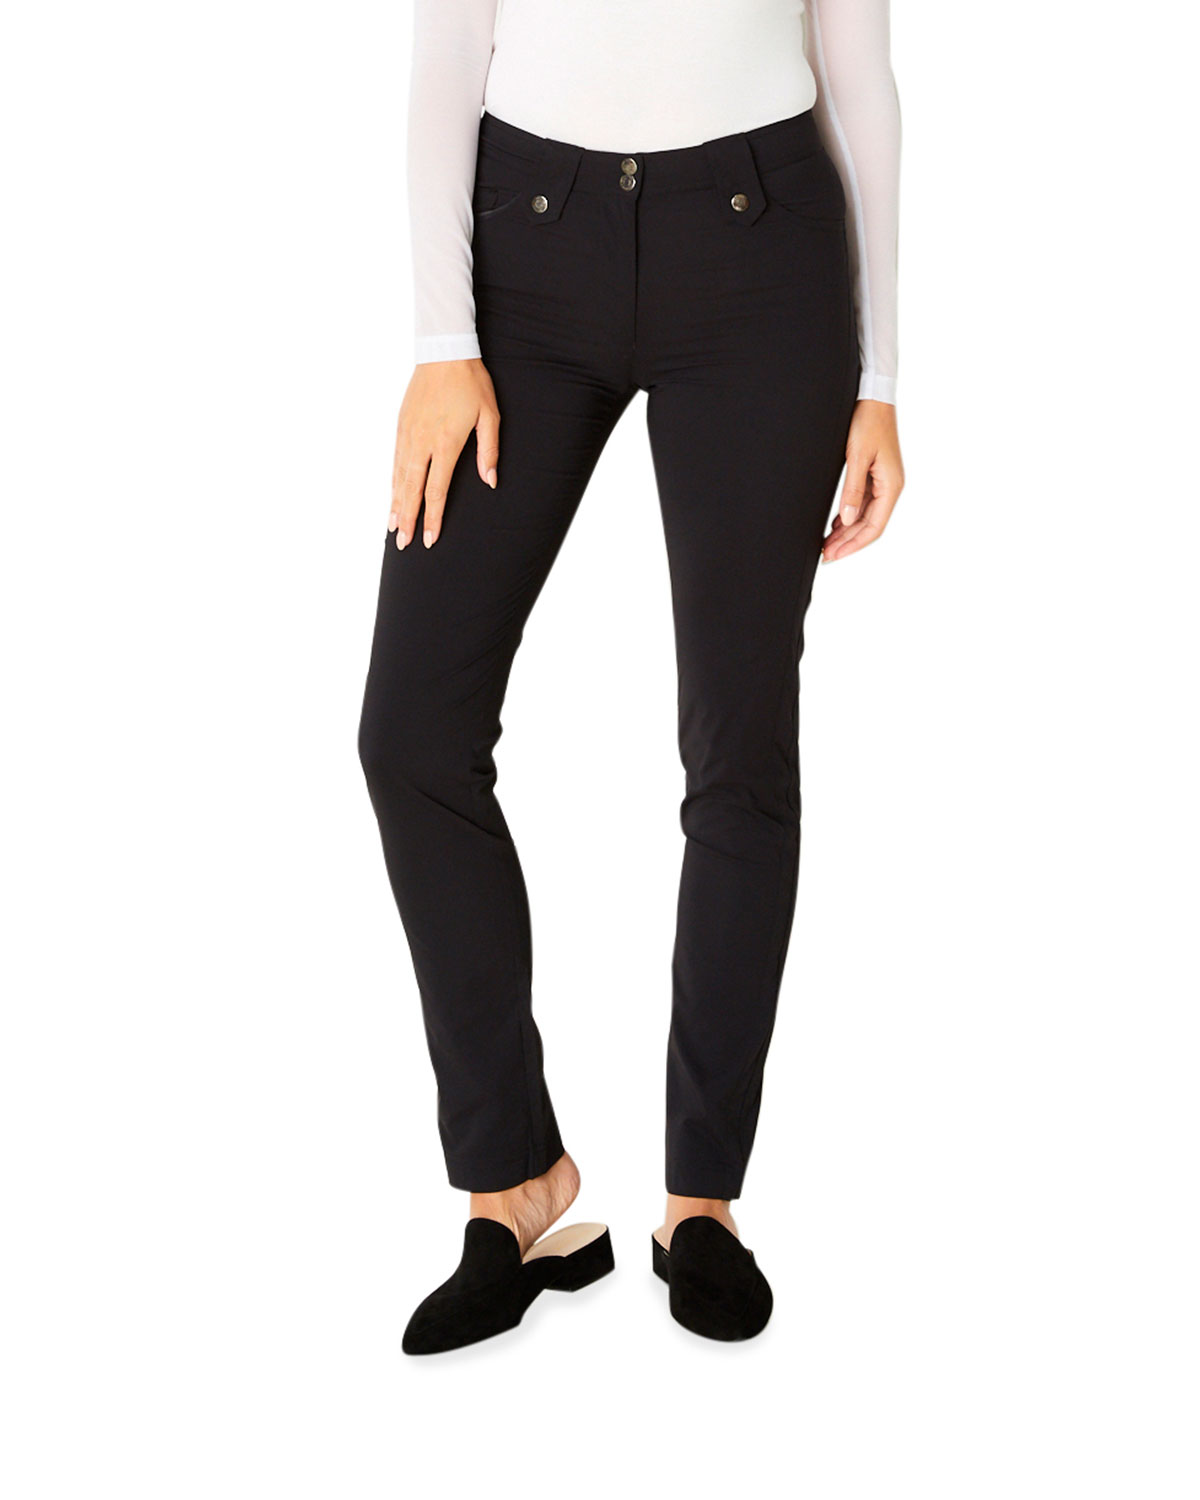 Anatomie Skyler Five Pocket High Rise Pants Neiman Marcus